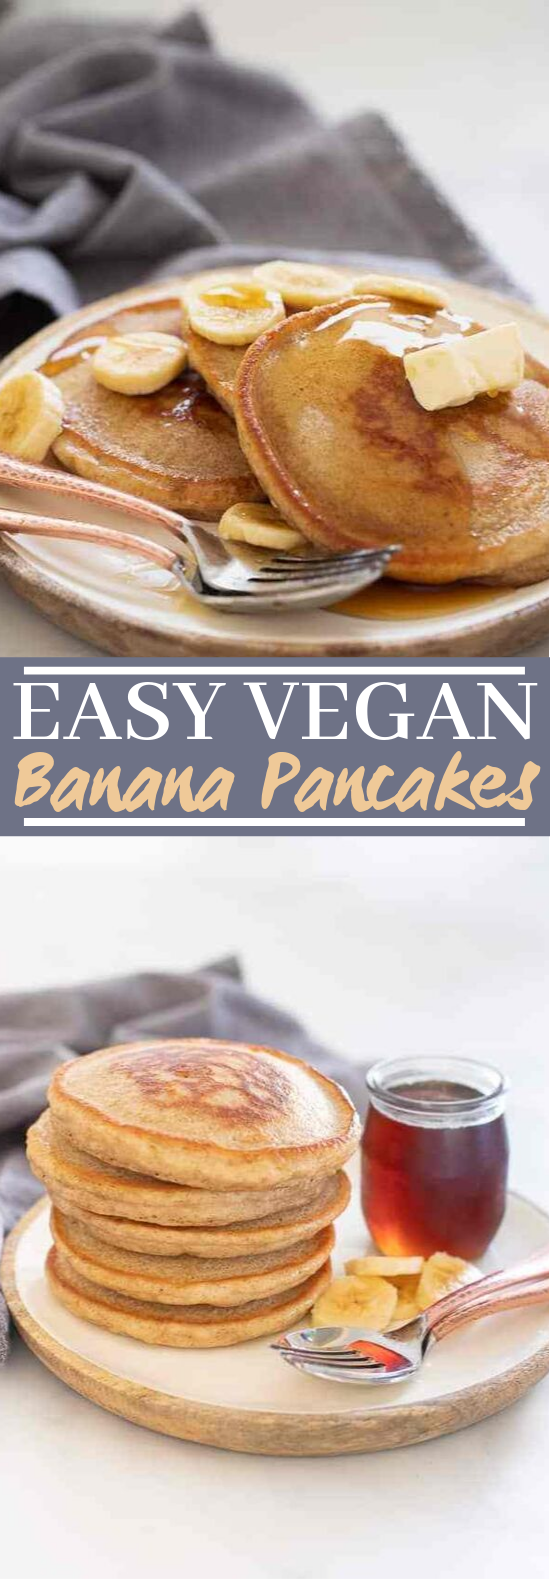 Vegan Banana Pancakes #breakfast #vegan